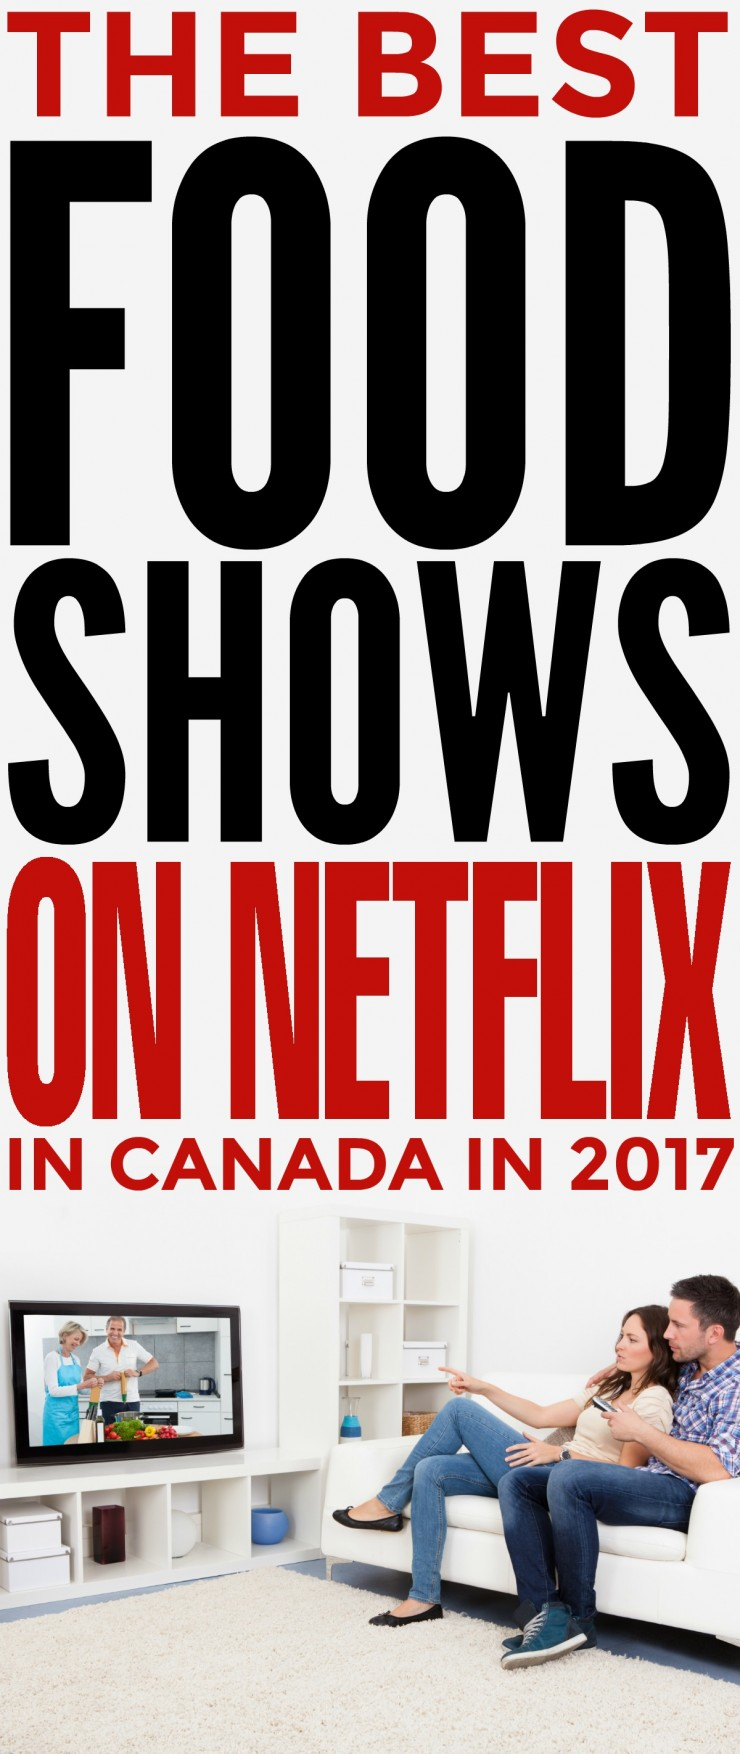 If you are starved for a good food series, there is a veritable smorgasbord of food and cooking based shows on Netflix Canada made for binge watching. I recommend a steady diet of the following series if you want a taste of the Best Food Shows on Netflix Canada.